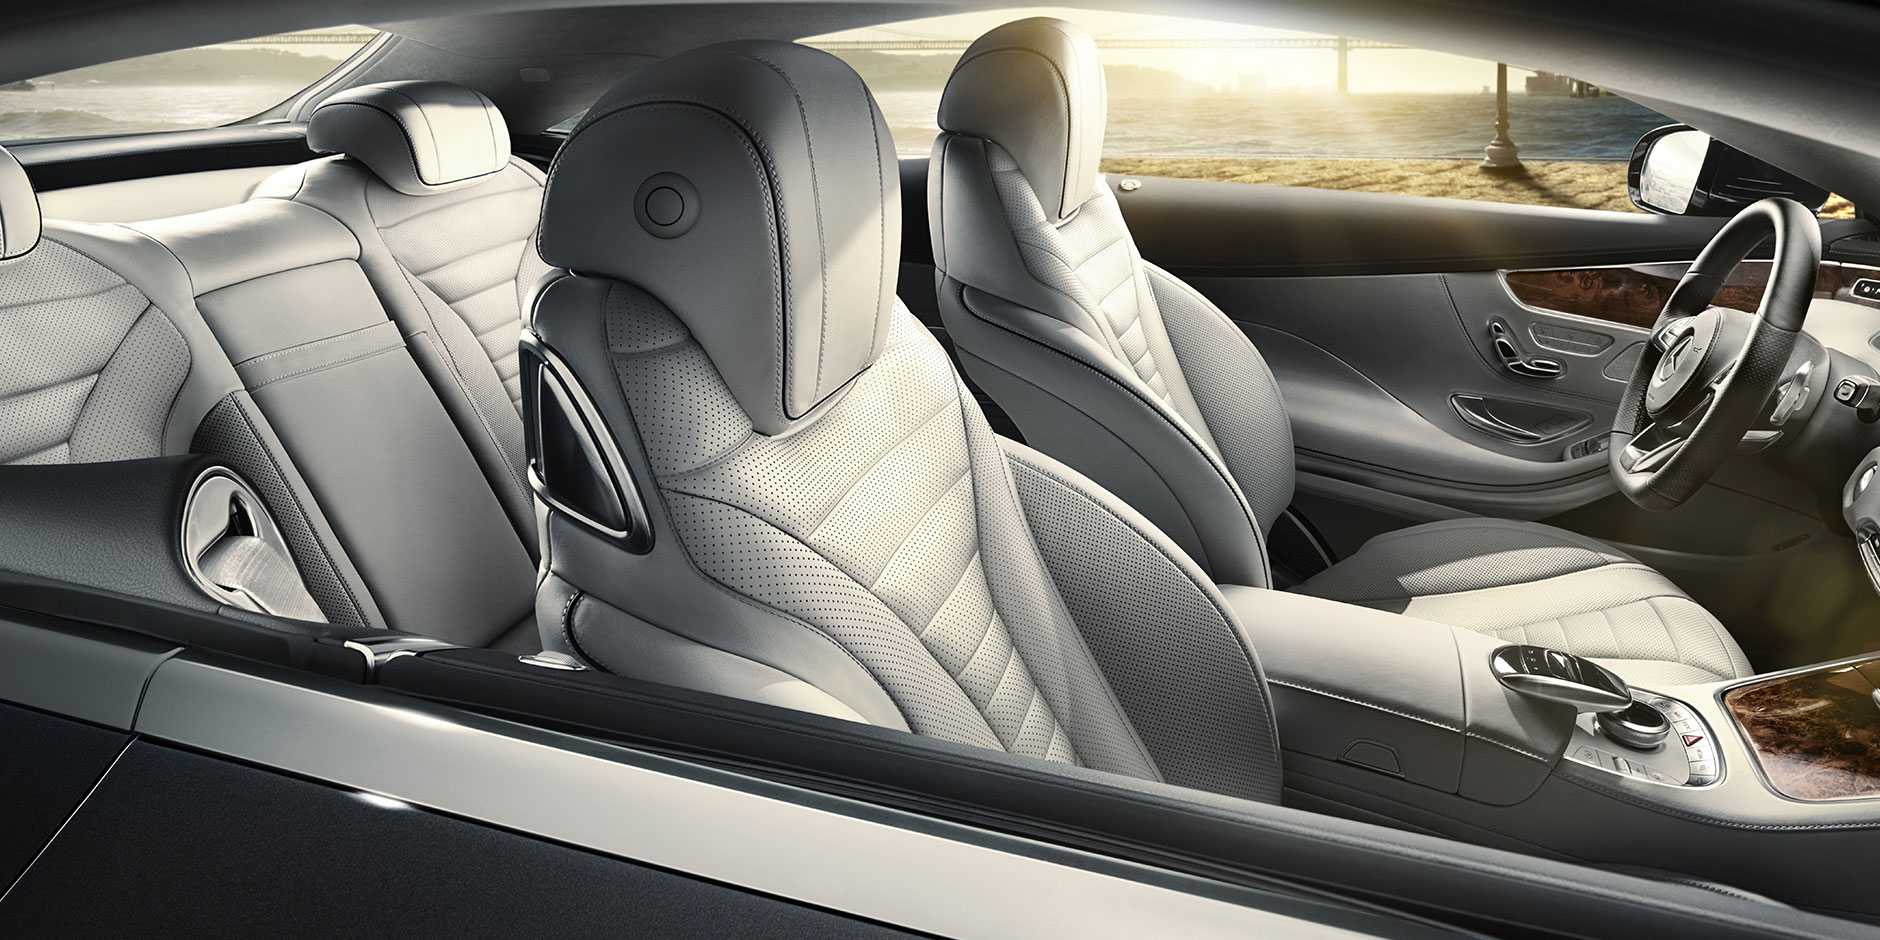 s-coupe interior